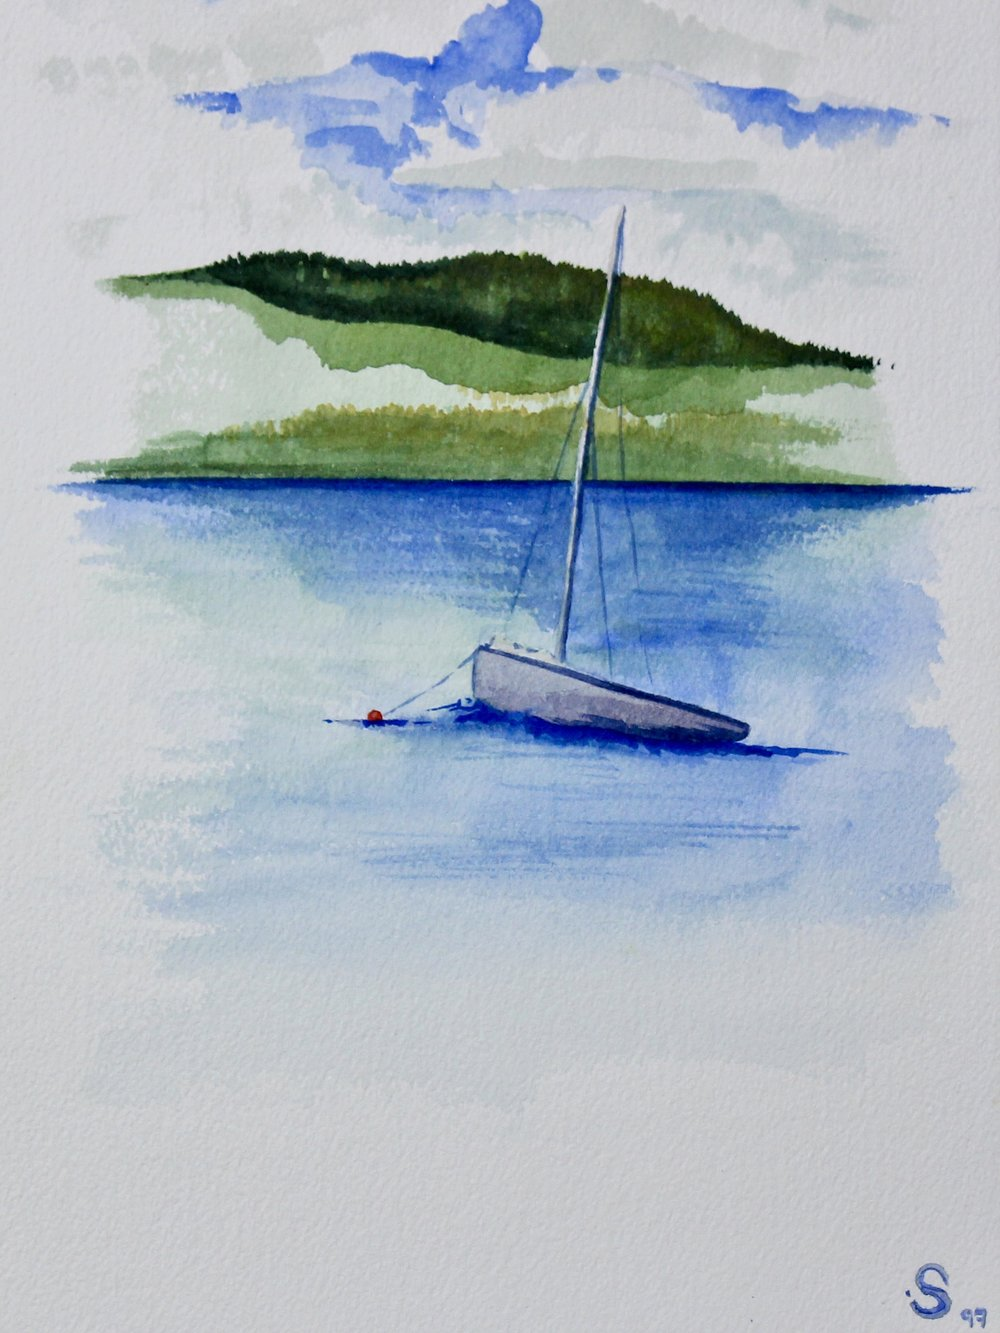 Loon Lake 1 -  2003 watercolour on paper 20cm x 26cm